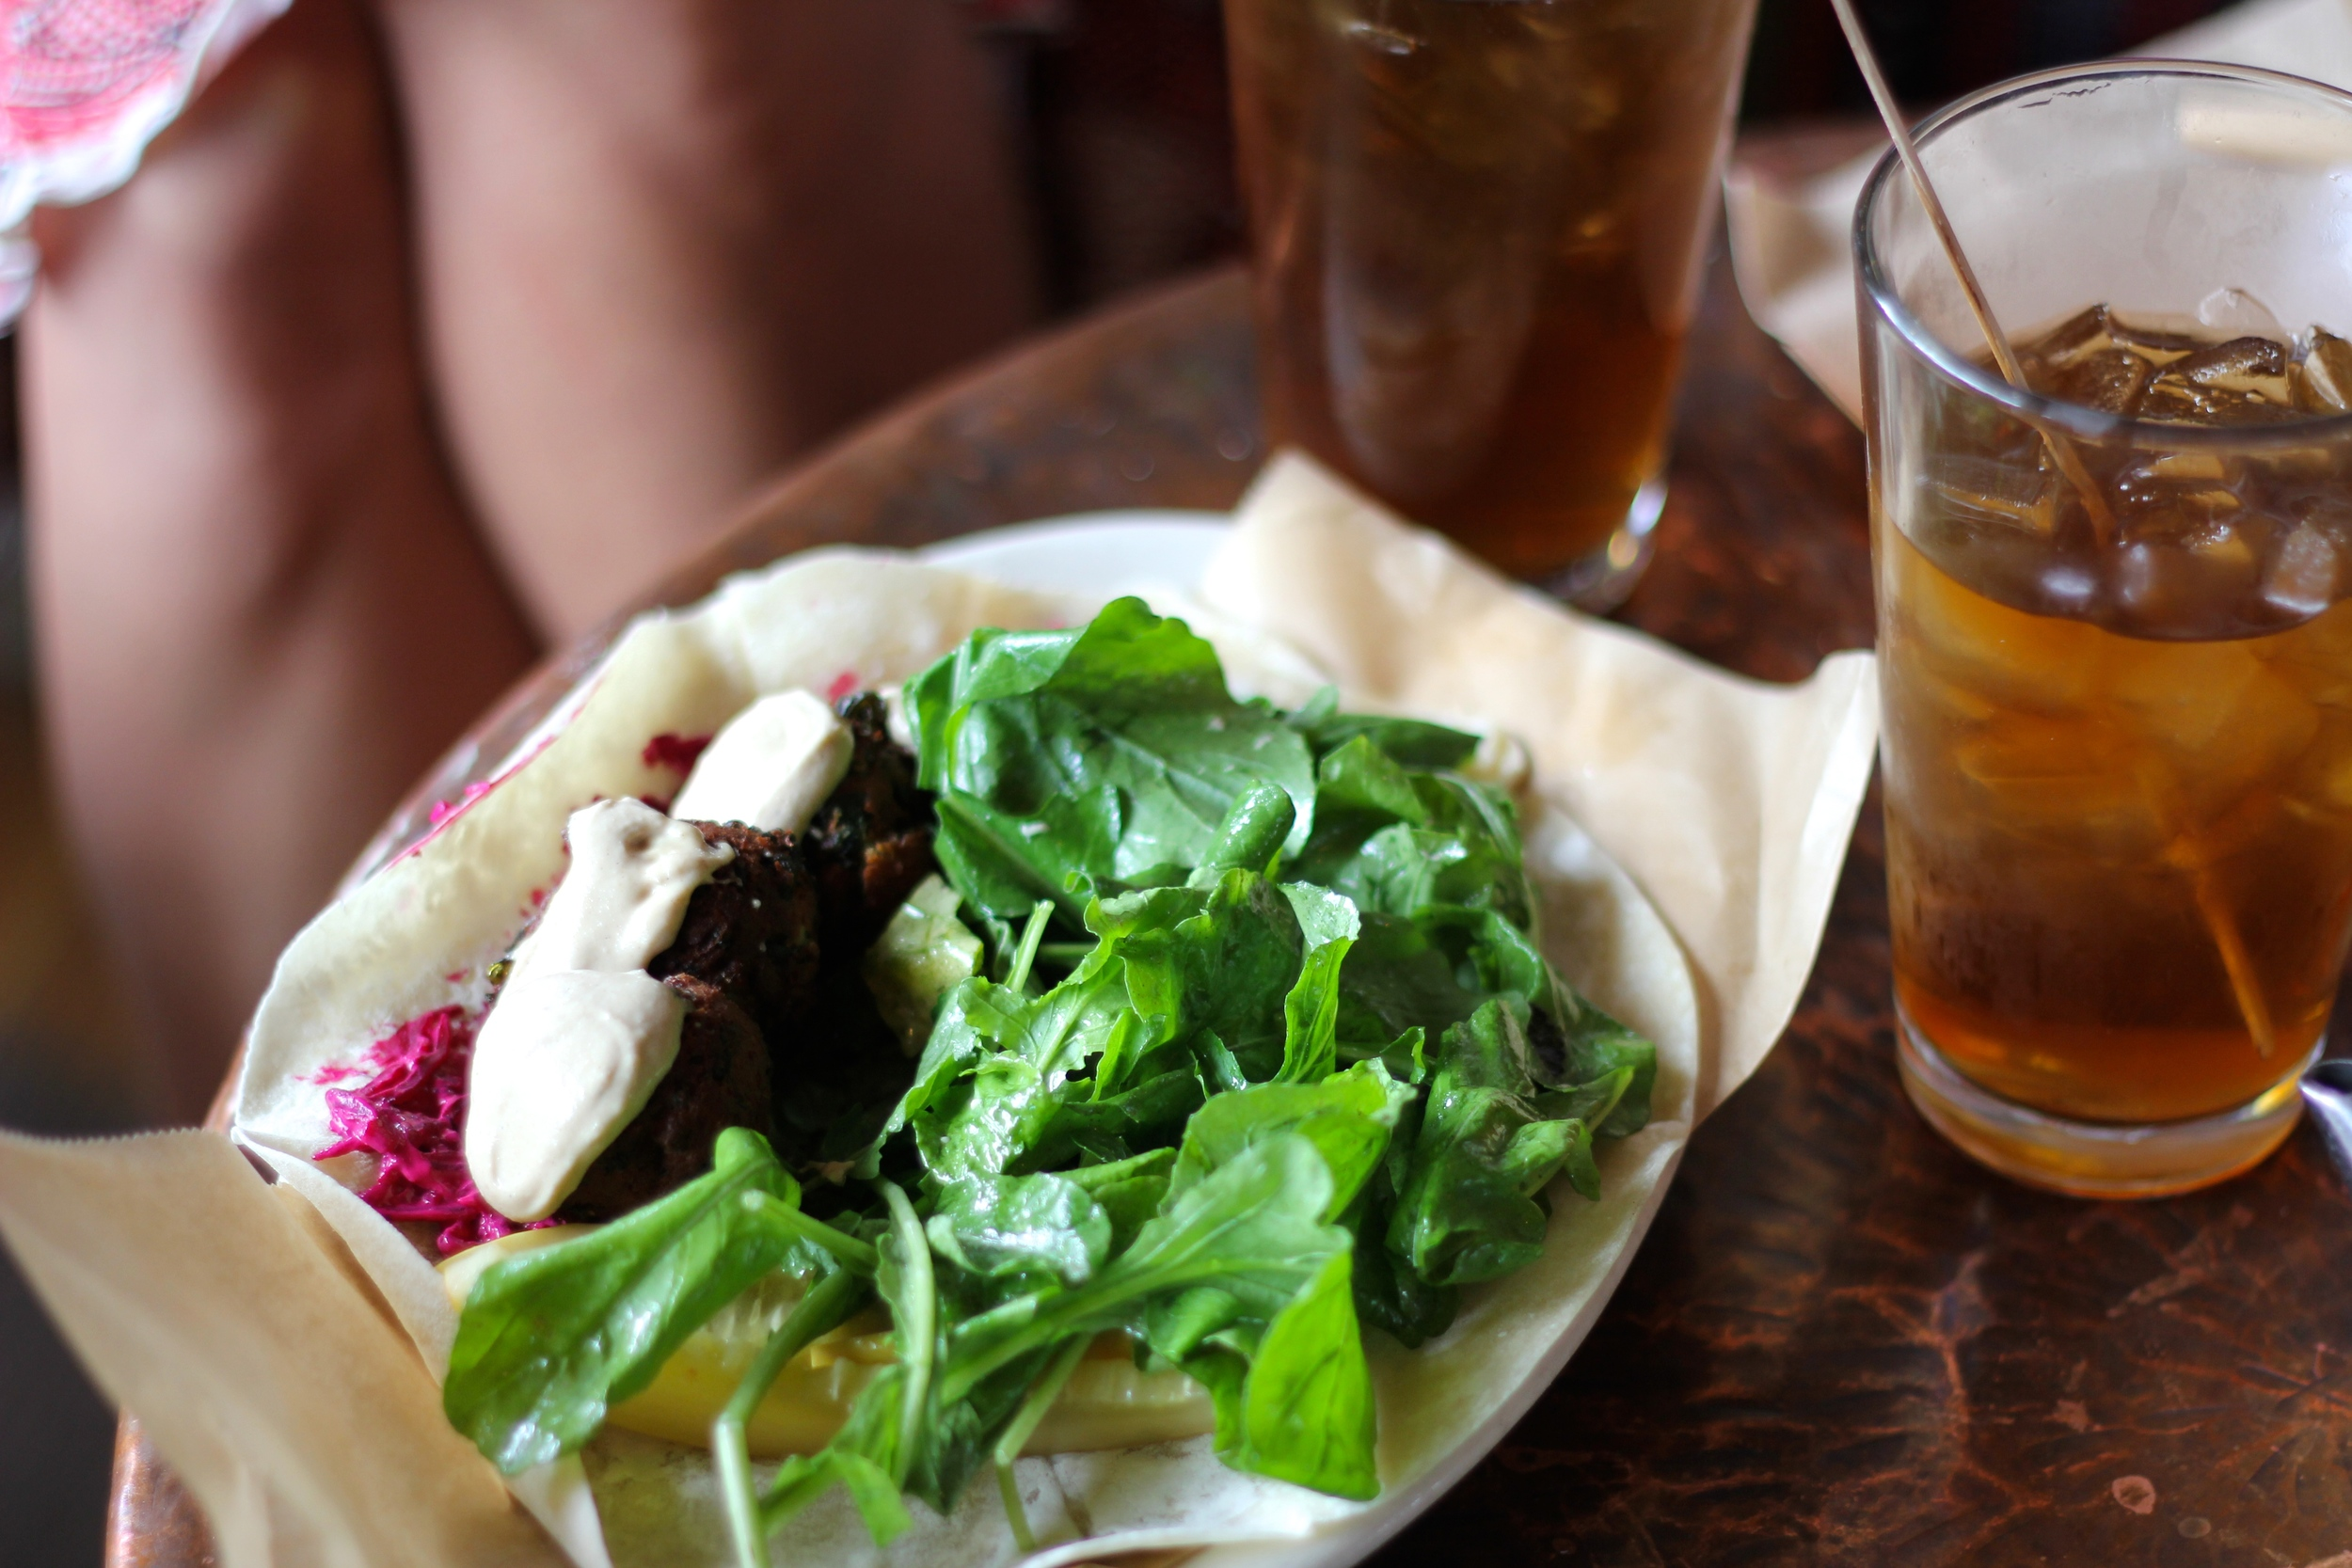 {Spinach falafel with beet tzatziki and green salad}